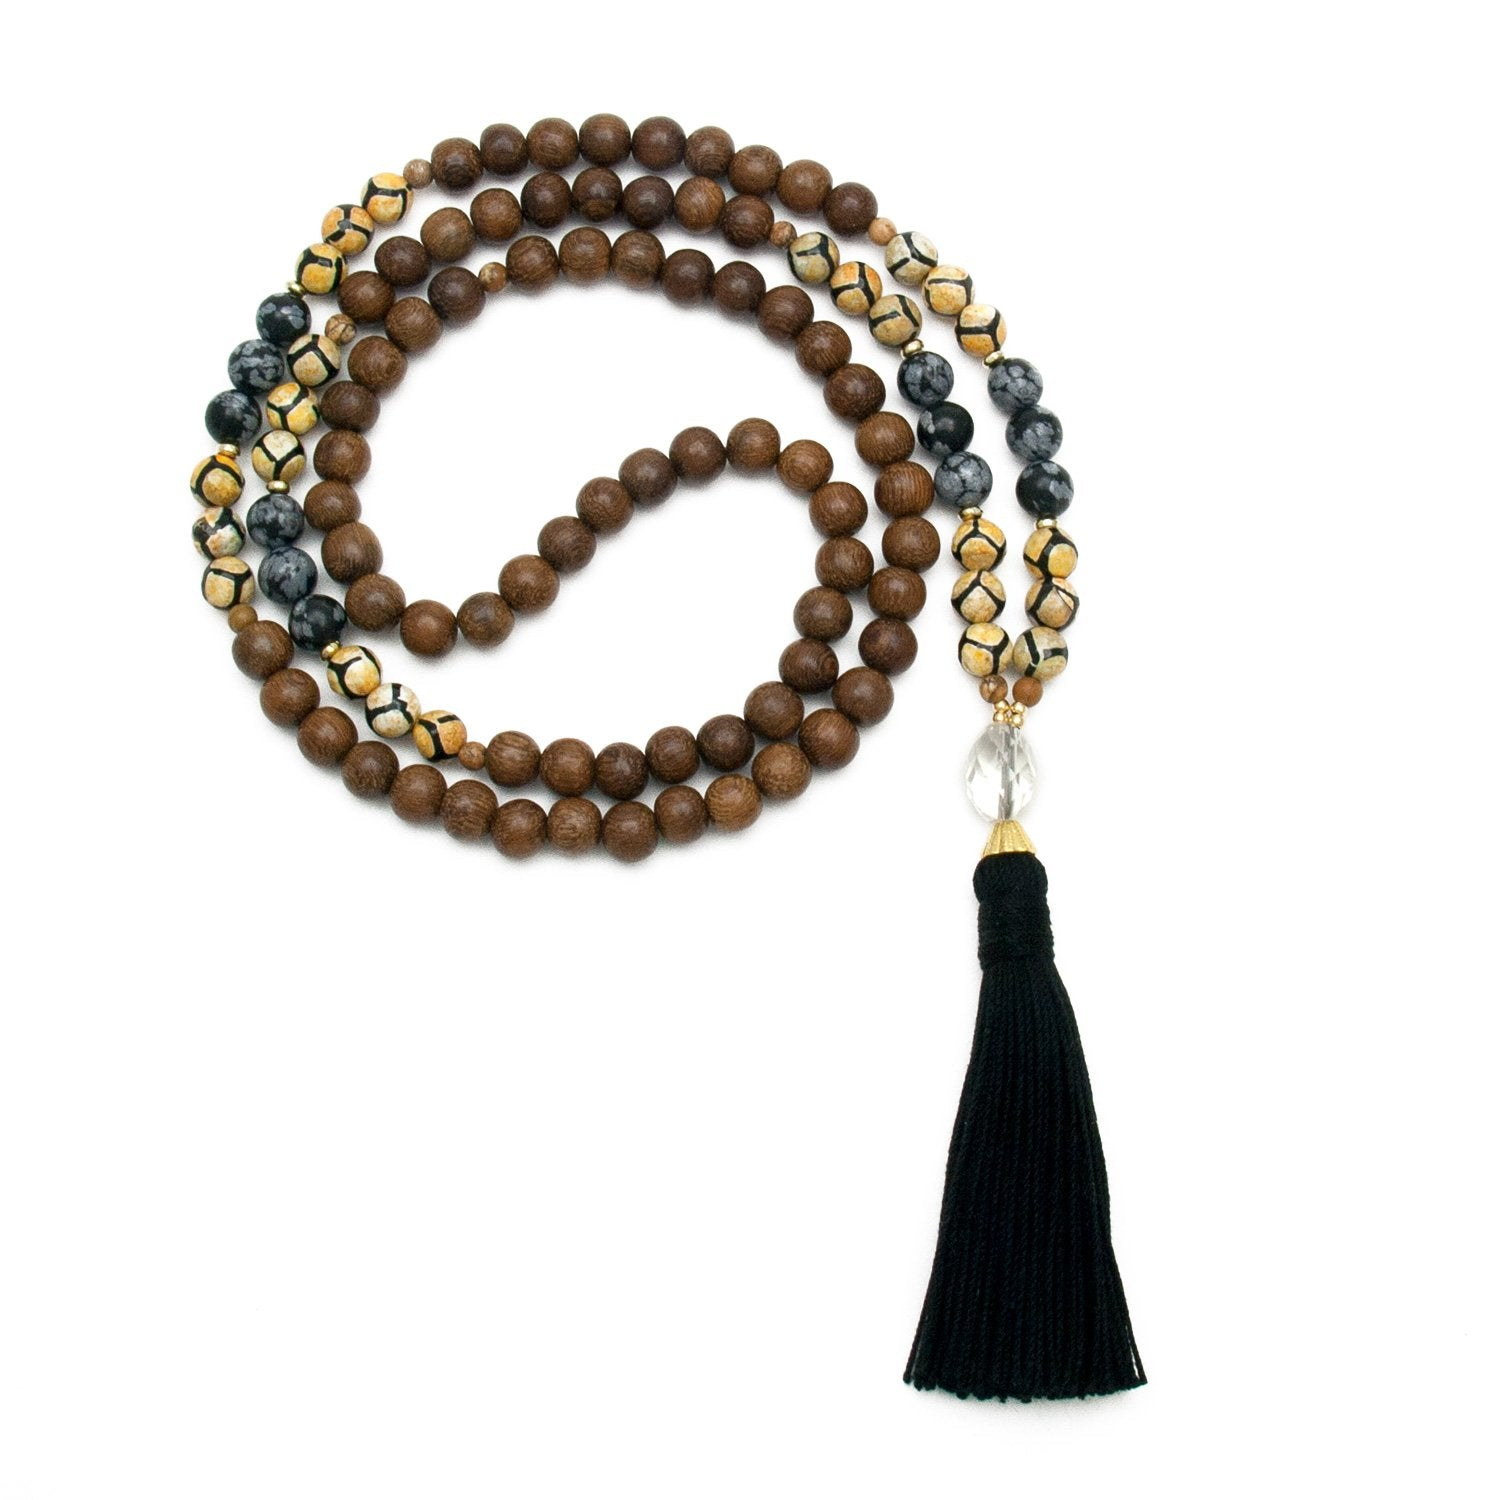 Scorpio Mala Necklace by Golden Lotus Mala